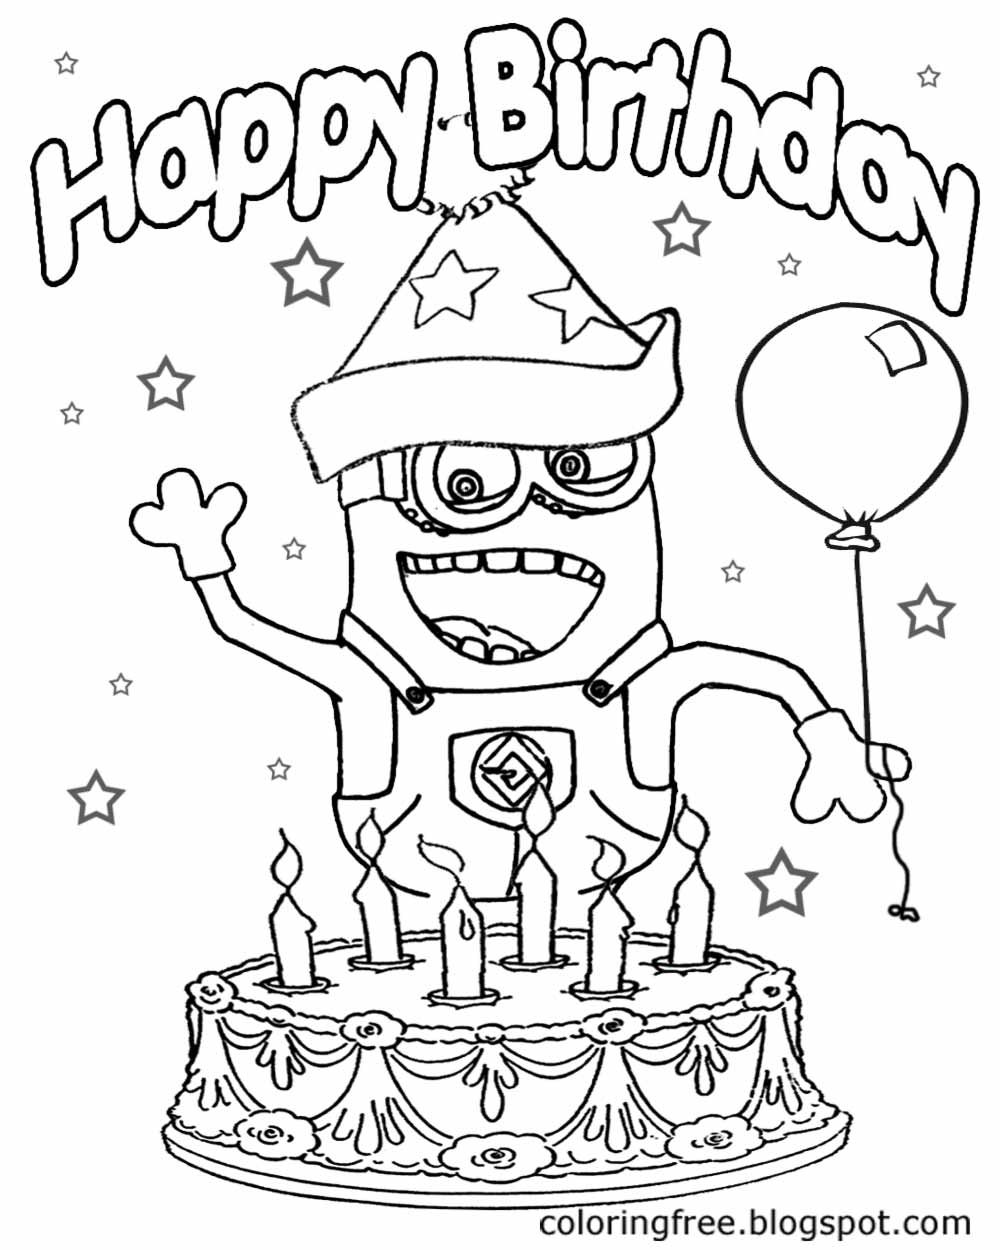 Big Party Cake With Candles Happy Birthday Minion Coloring Pages For Girls Celebrat Happy Birthday Coloring Pages Minion Coloring Pages Birthday Coloring Pages